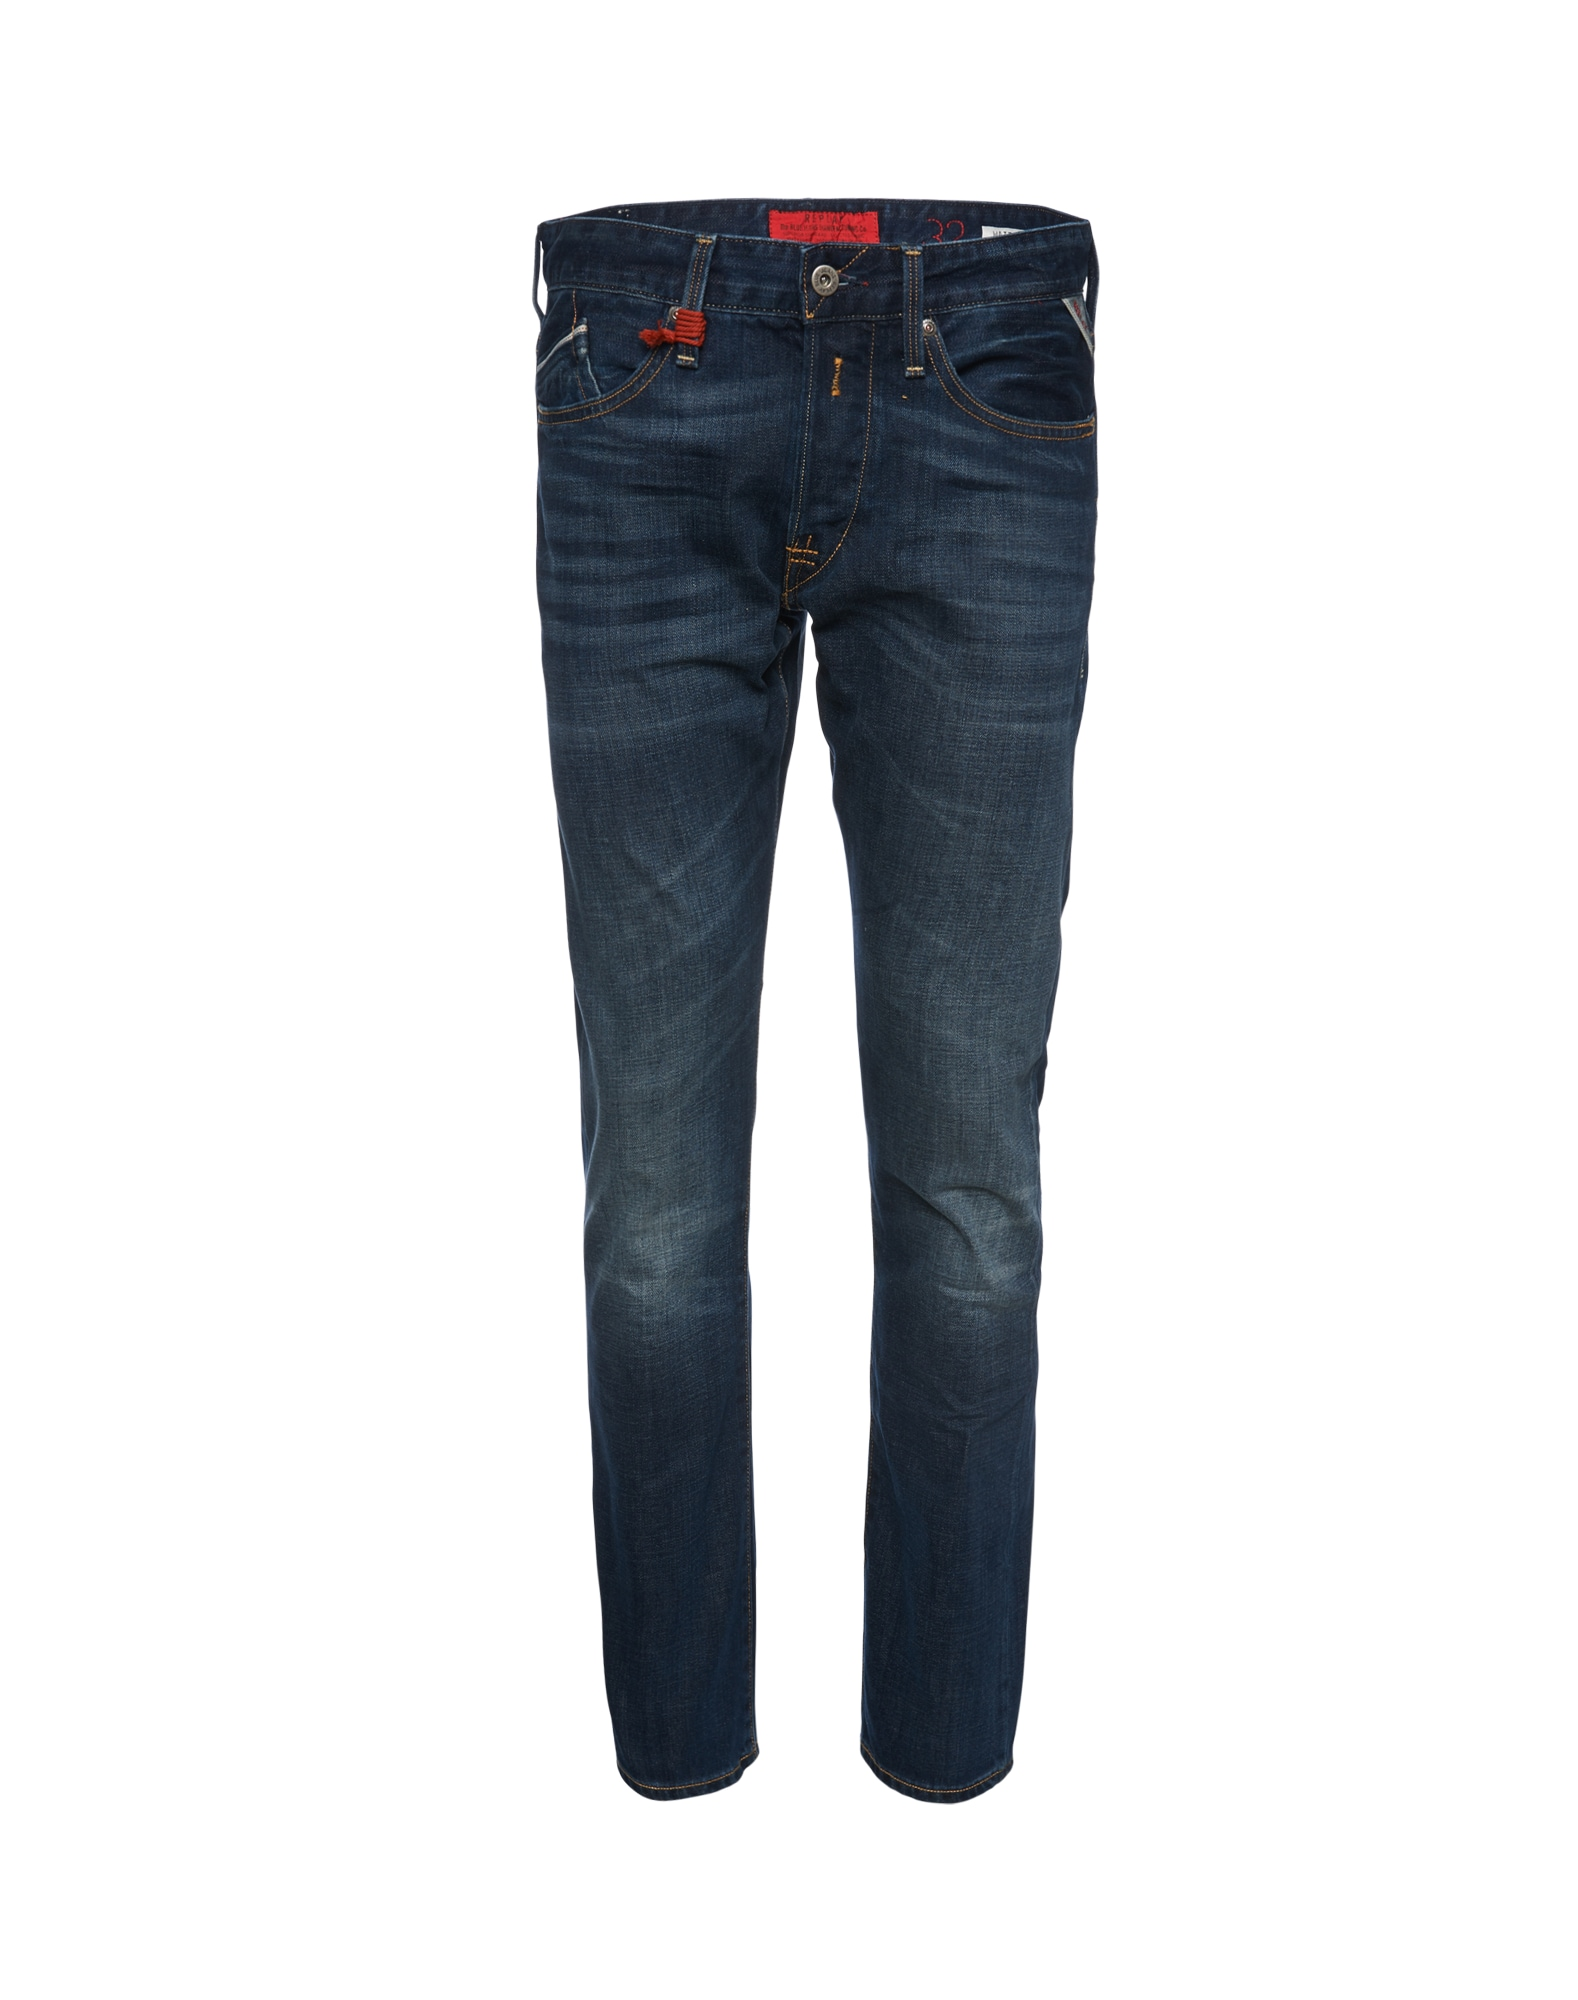 REPLAY Heren Jeans Waitom blauw